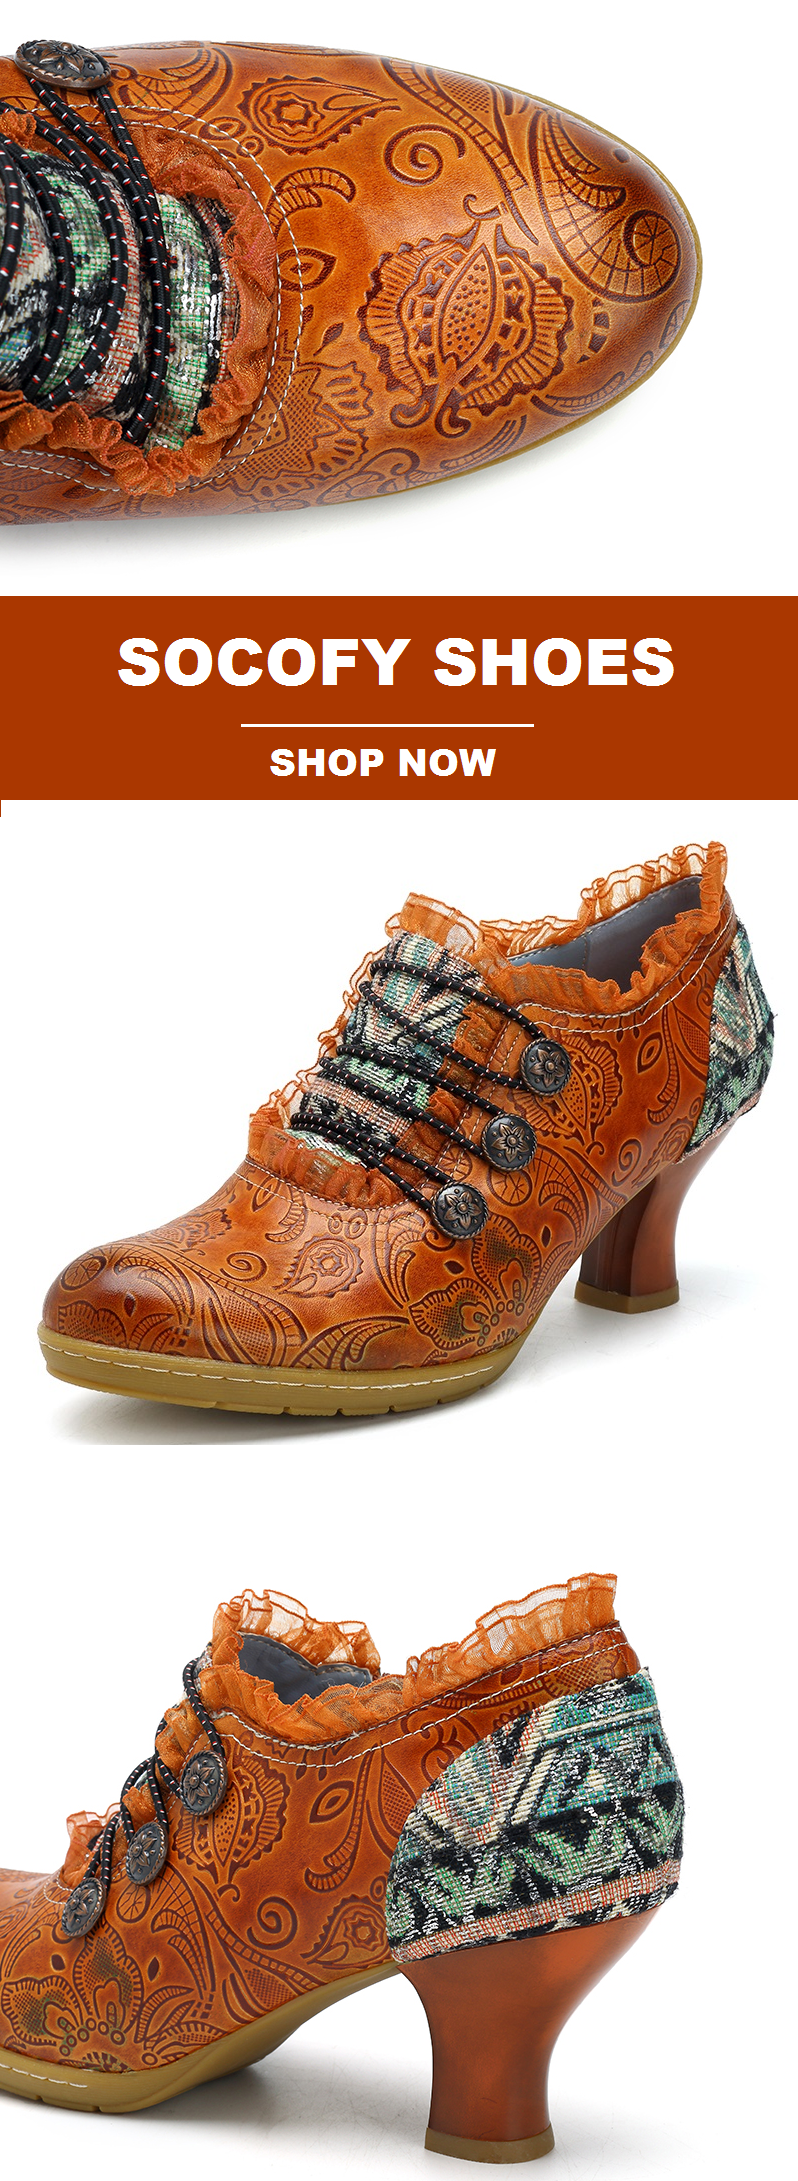 US$68.20 Only! SOCOFY Retro Buckle Printing Mid Heel Leather Pumps Shoes Make Yo... 11